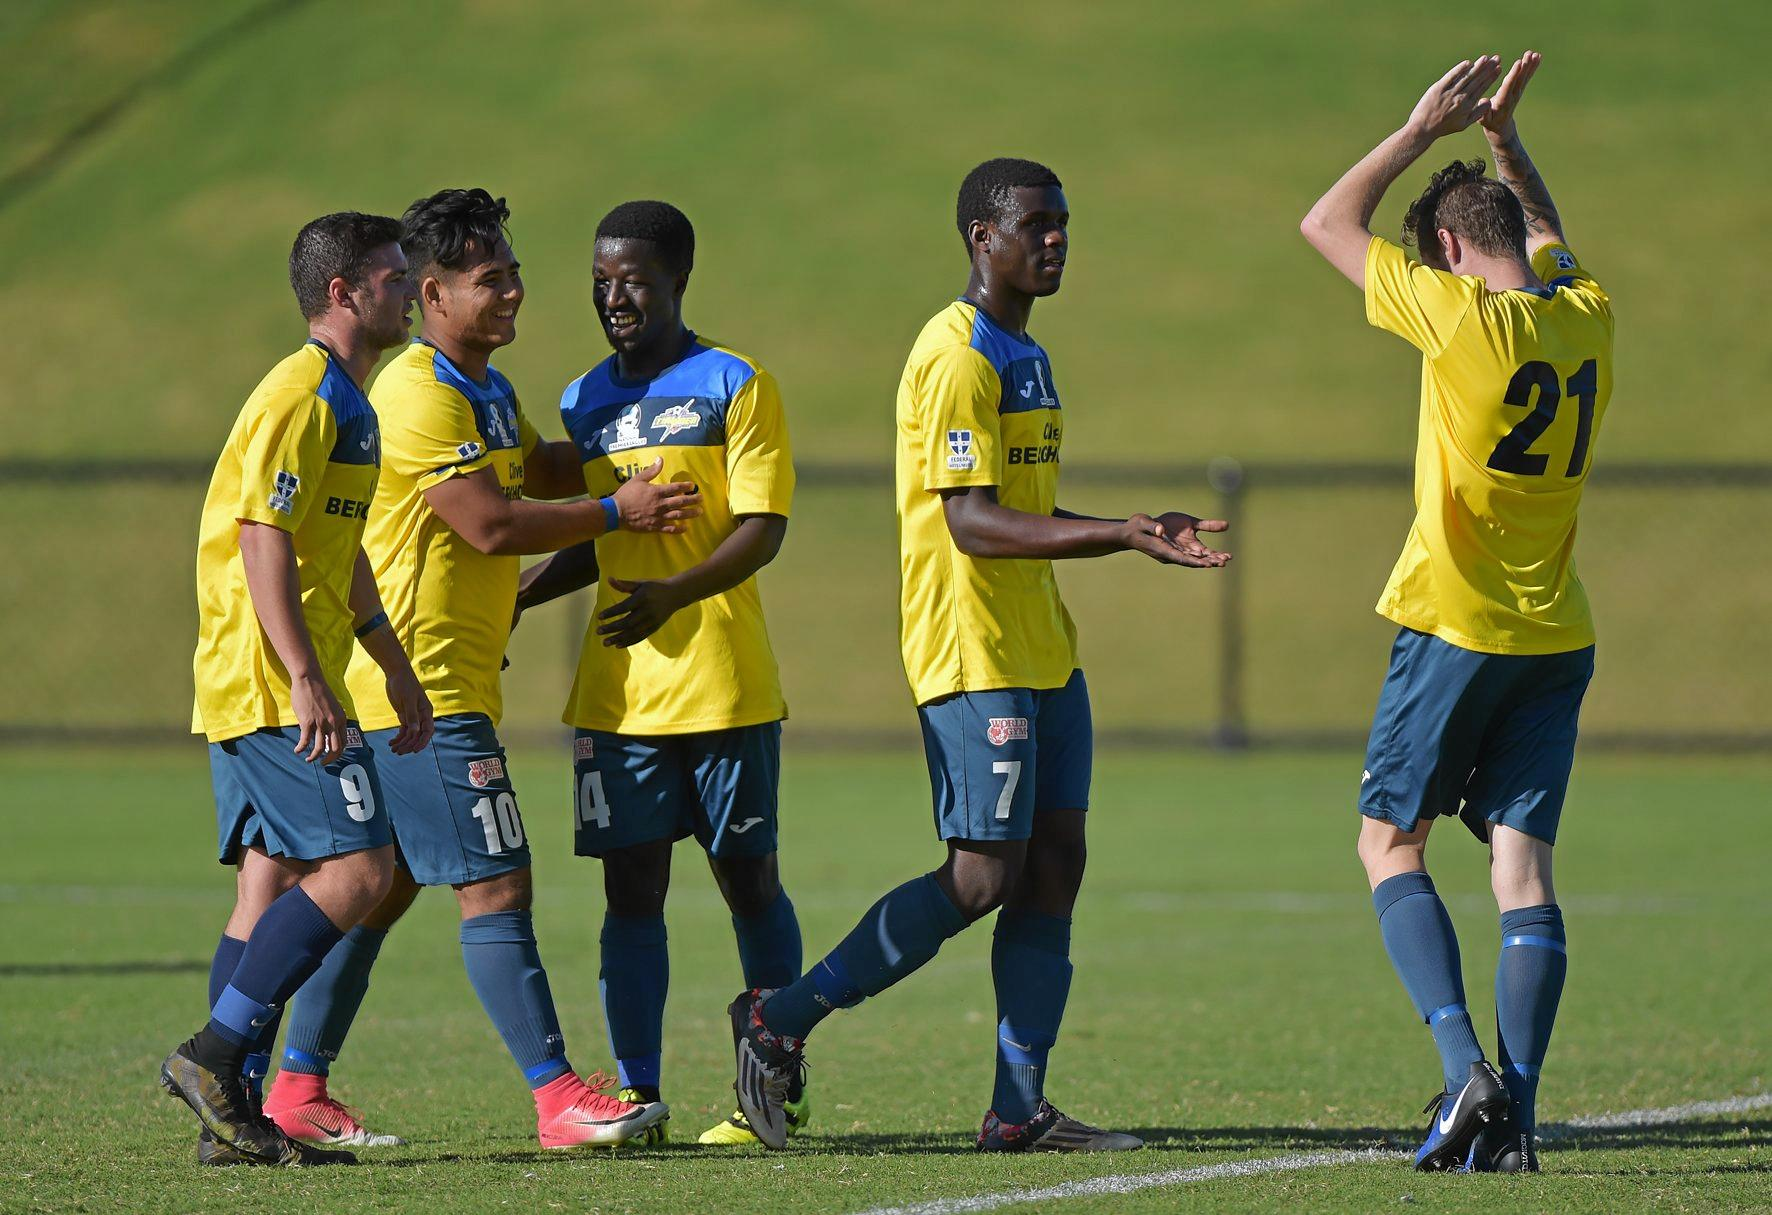 HIGH-FIVE: South-West Thunder celebrate their second goal against Sunshine Coast Fire.